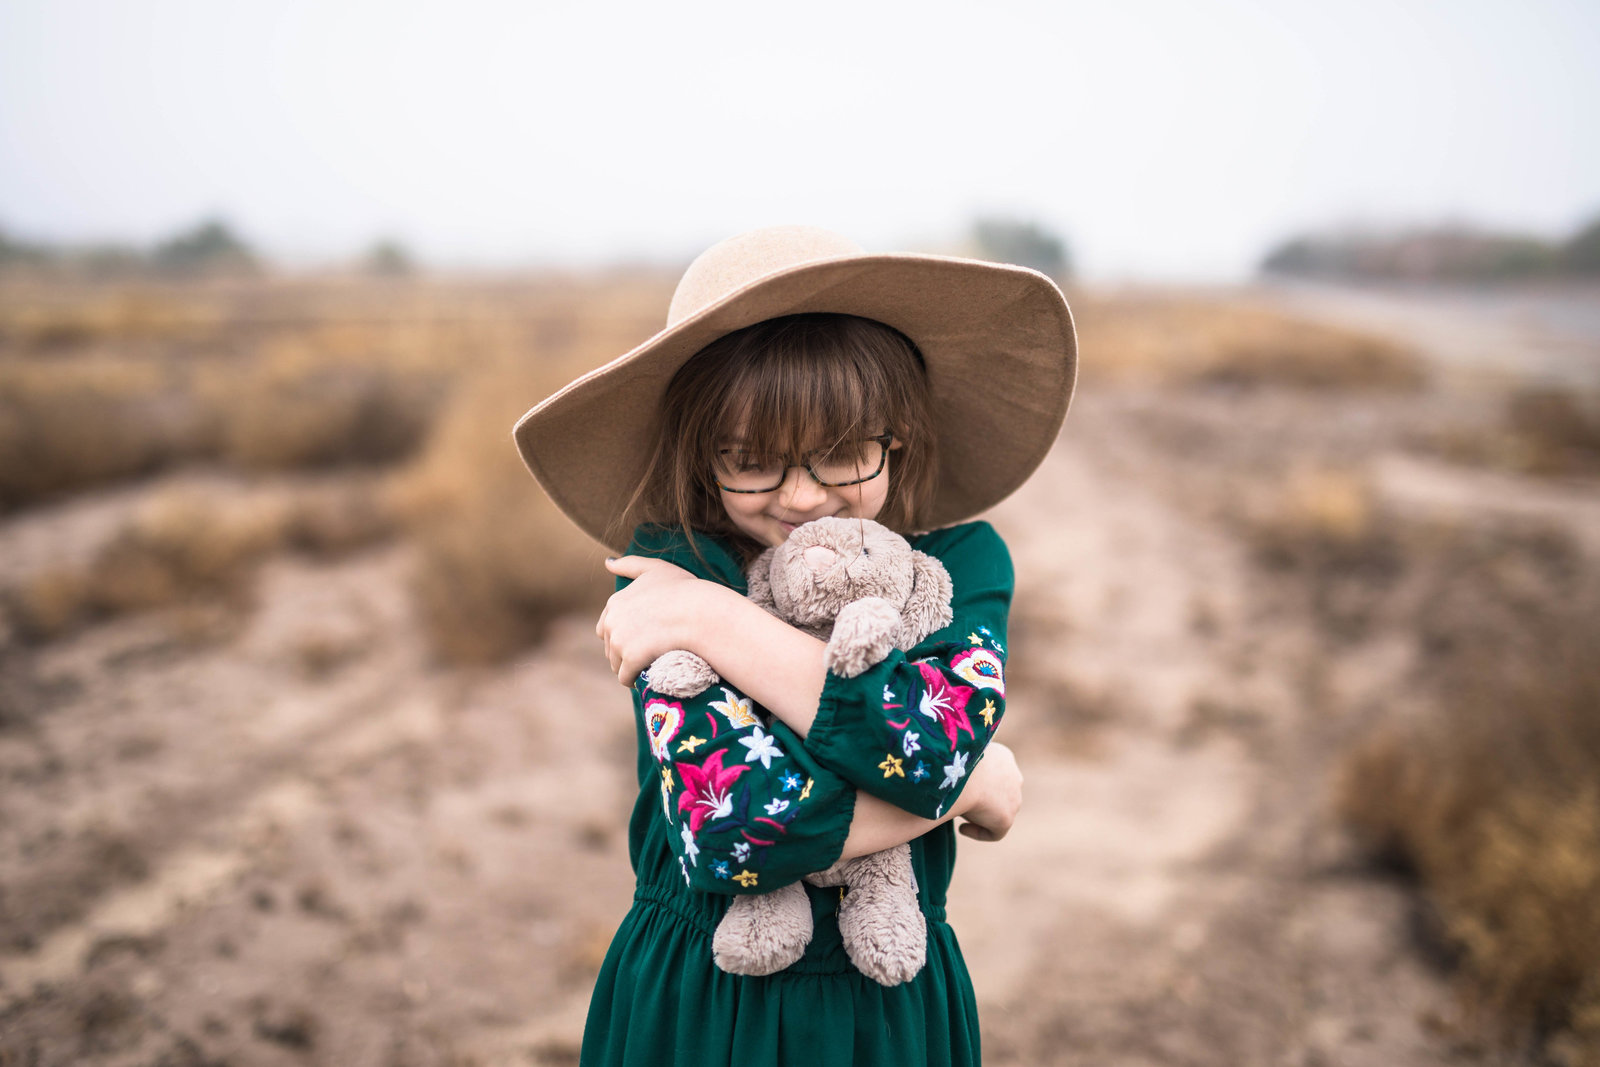 Girl in a green dress and a hat in a field hugging a stuffed bunny